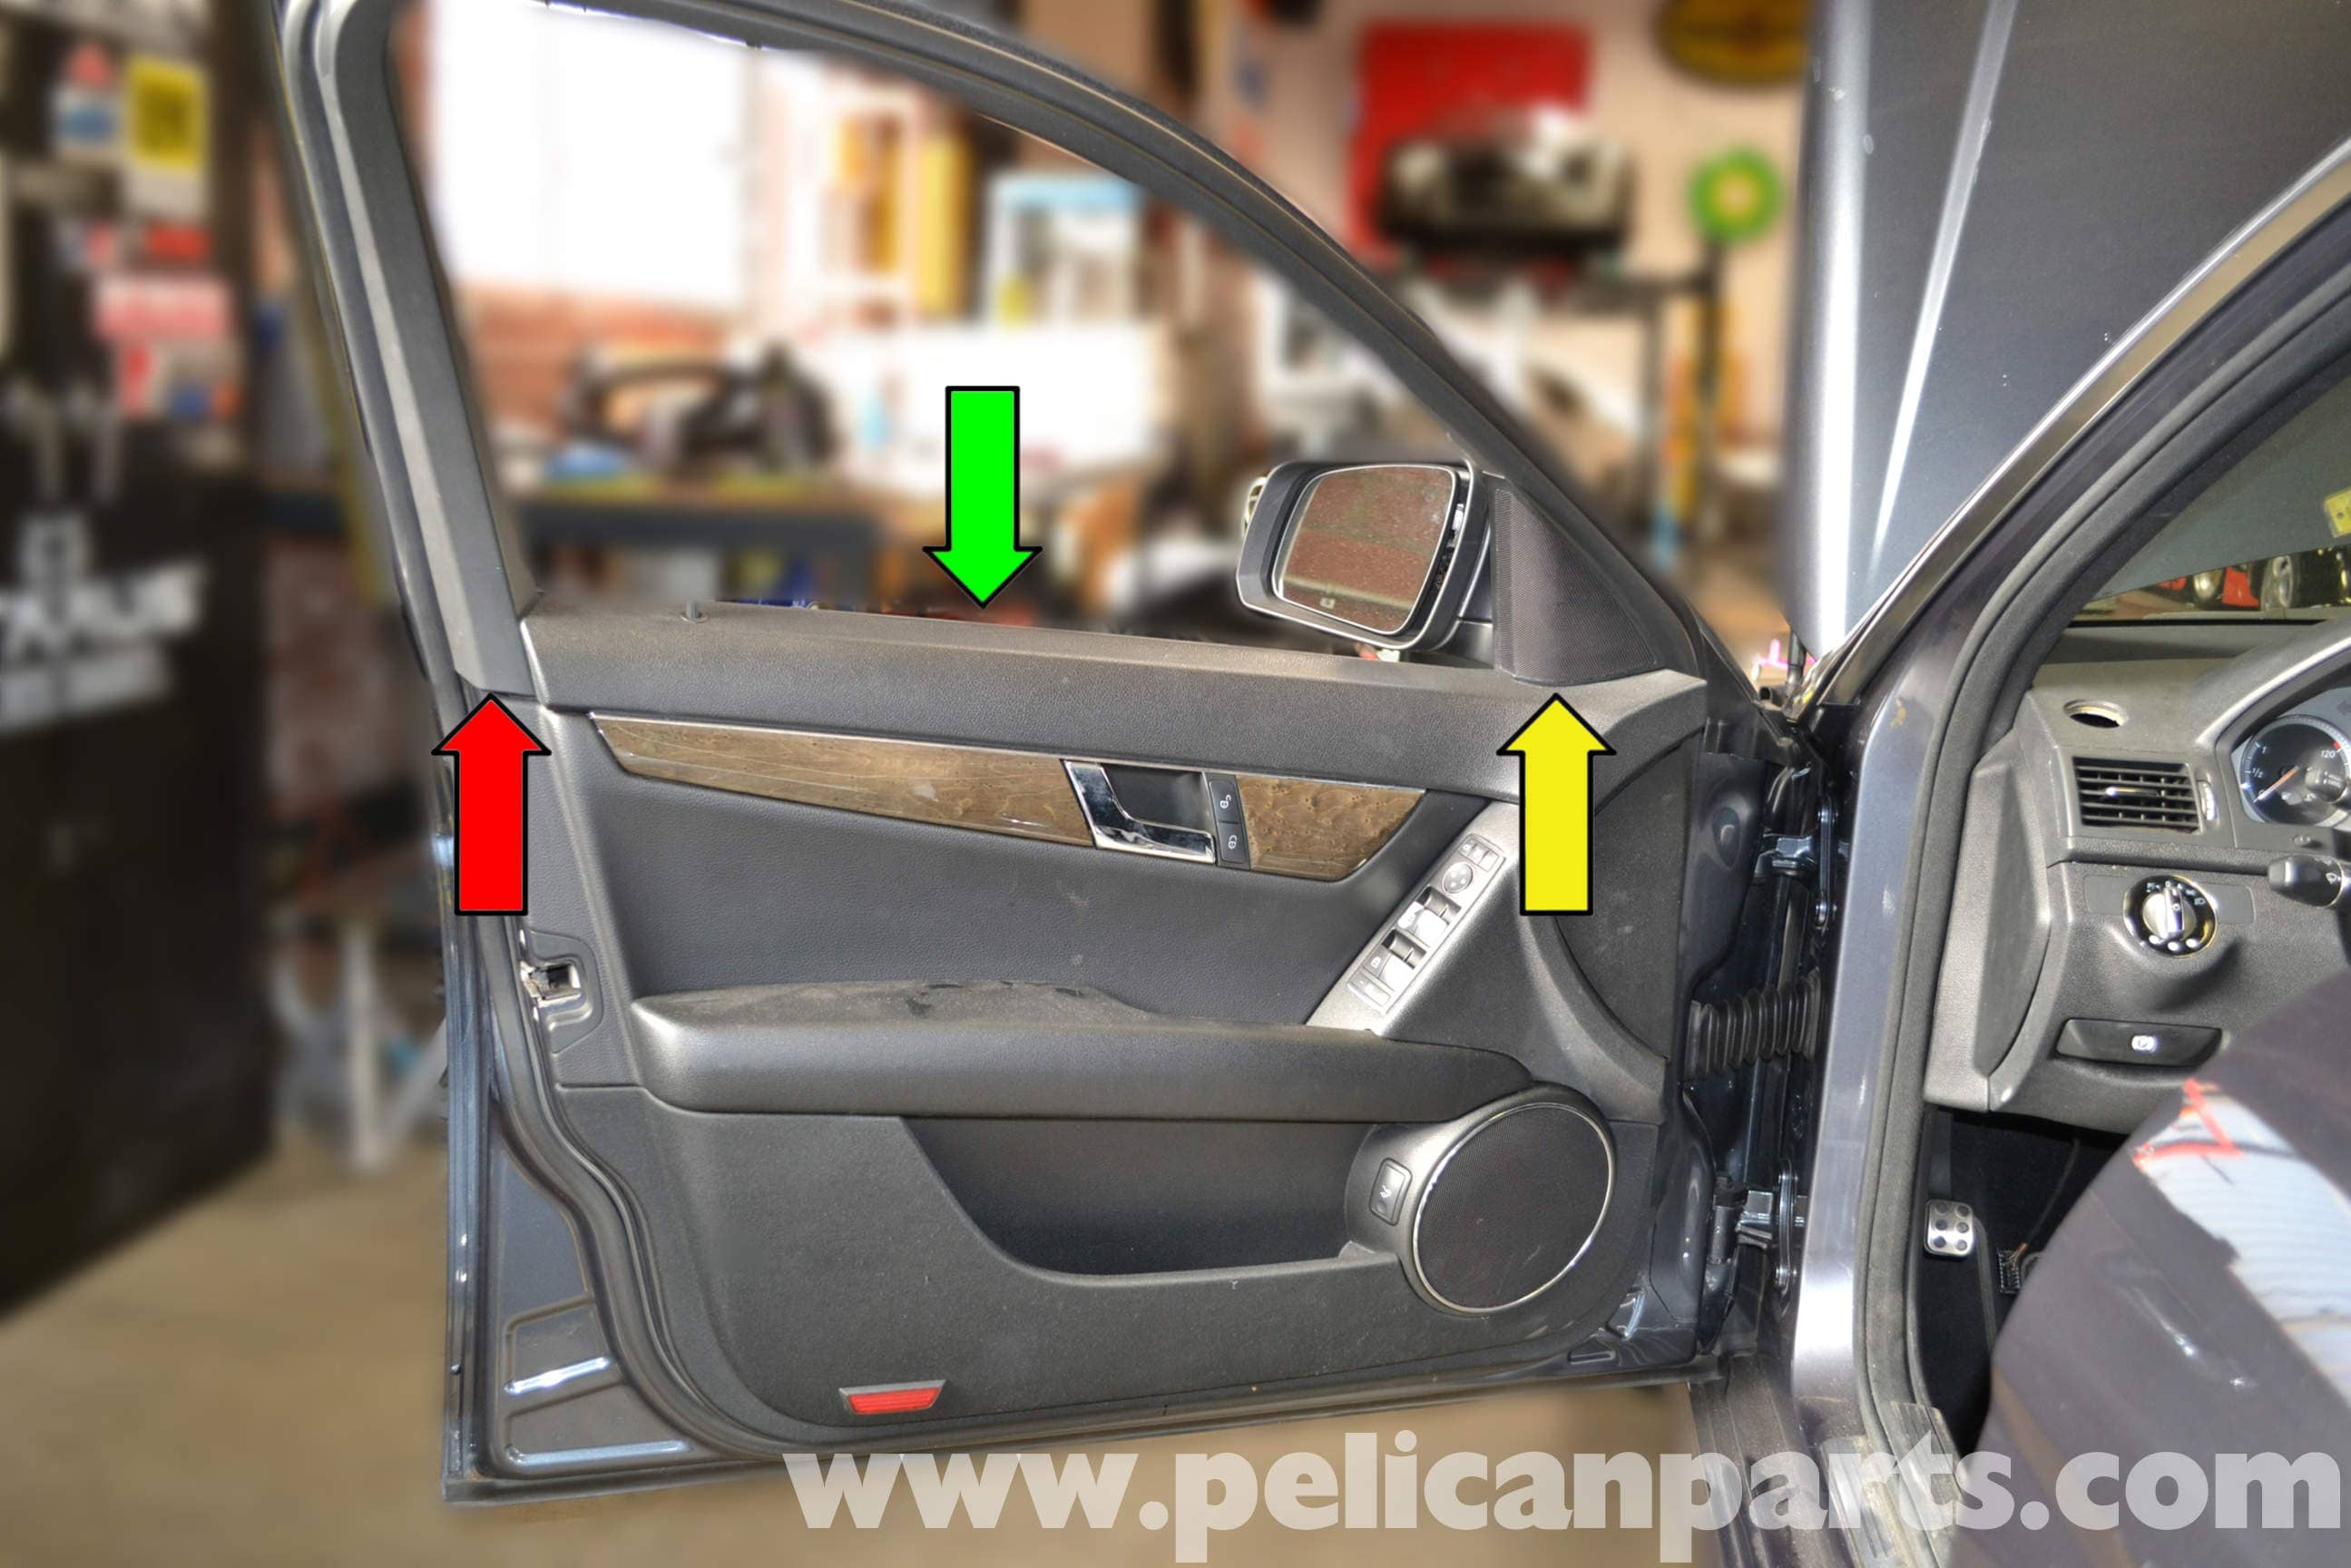 Large Image | Extra-Large Image & Mercedes-Benz W204 Front Door Panel Removal - (2008-2014) C250 C300 ...